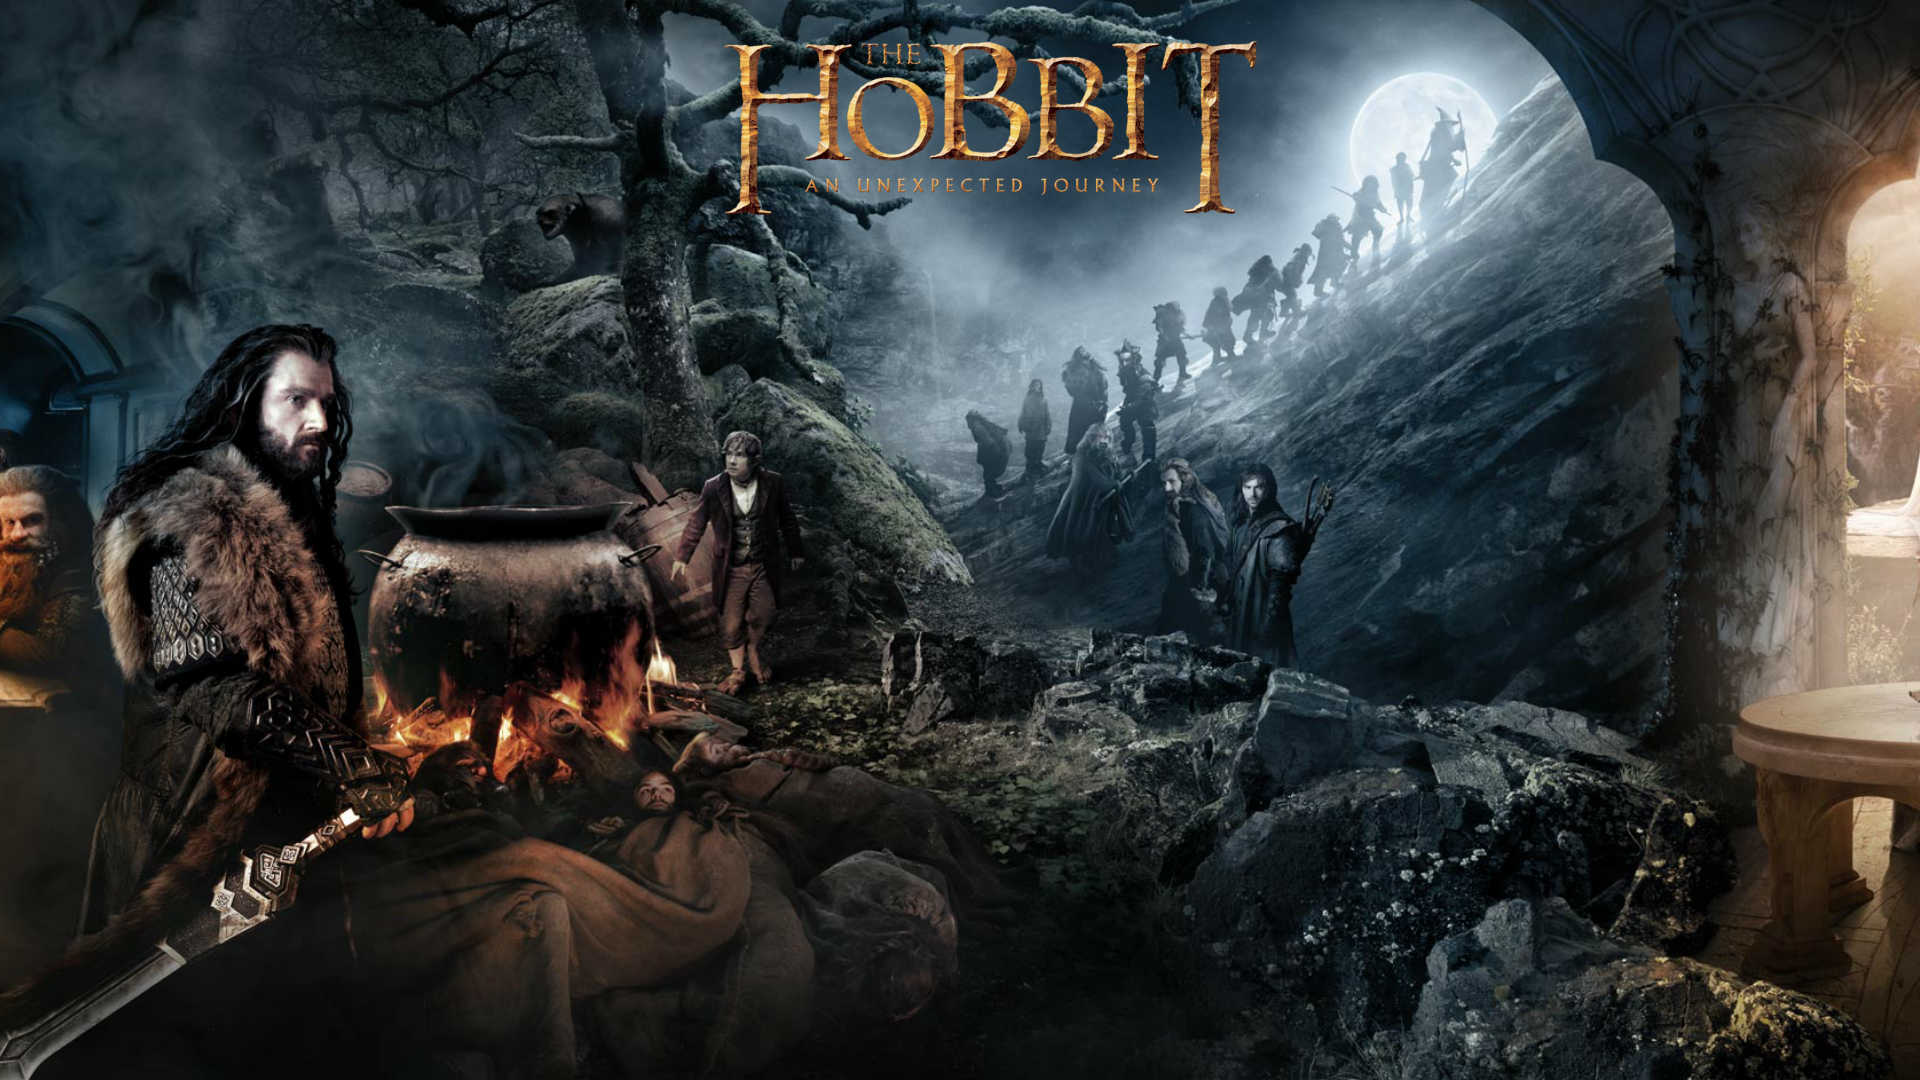 THE HOBBIT Will Get Limited 48fps Theatrical Release